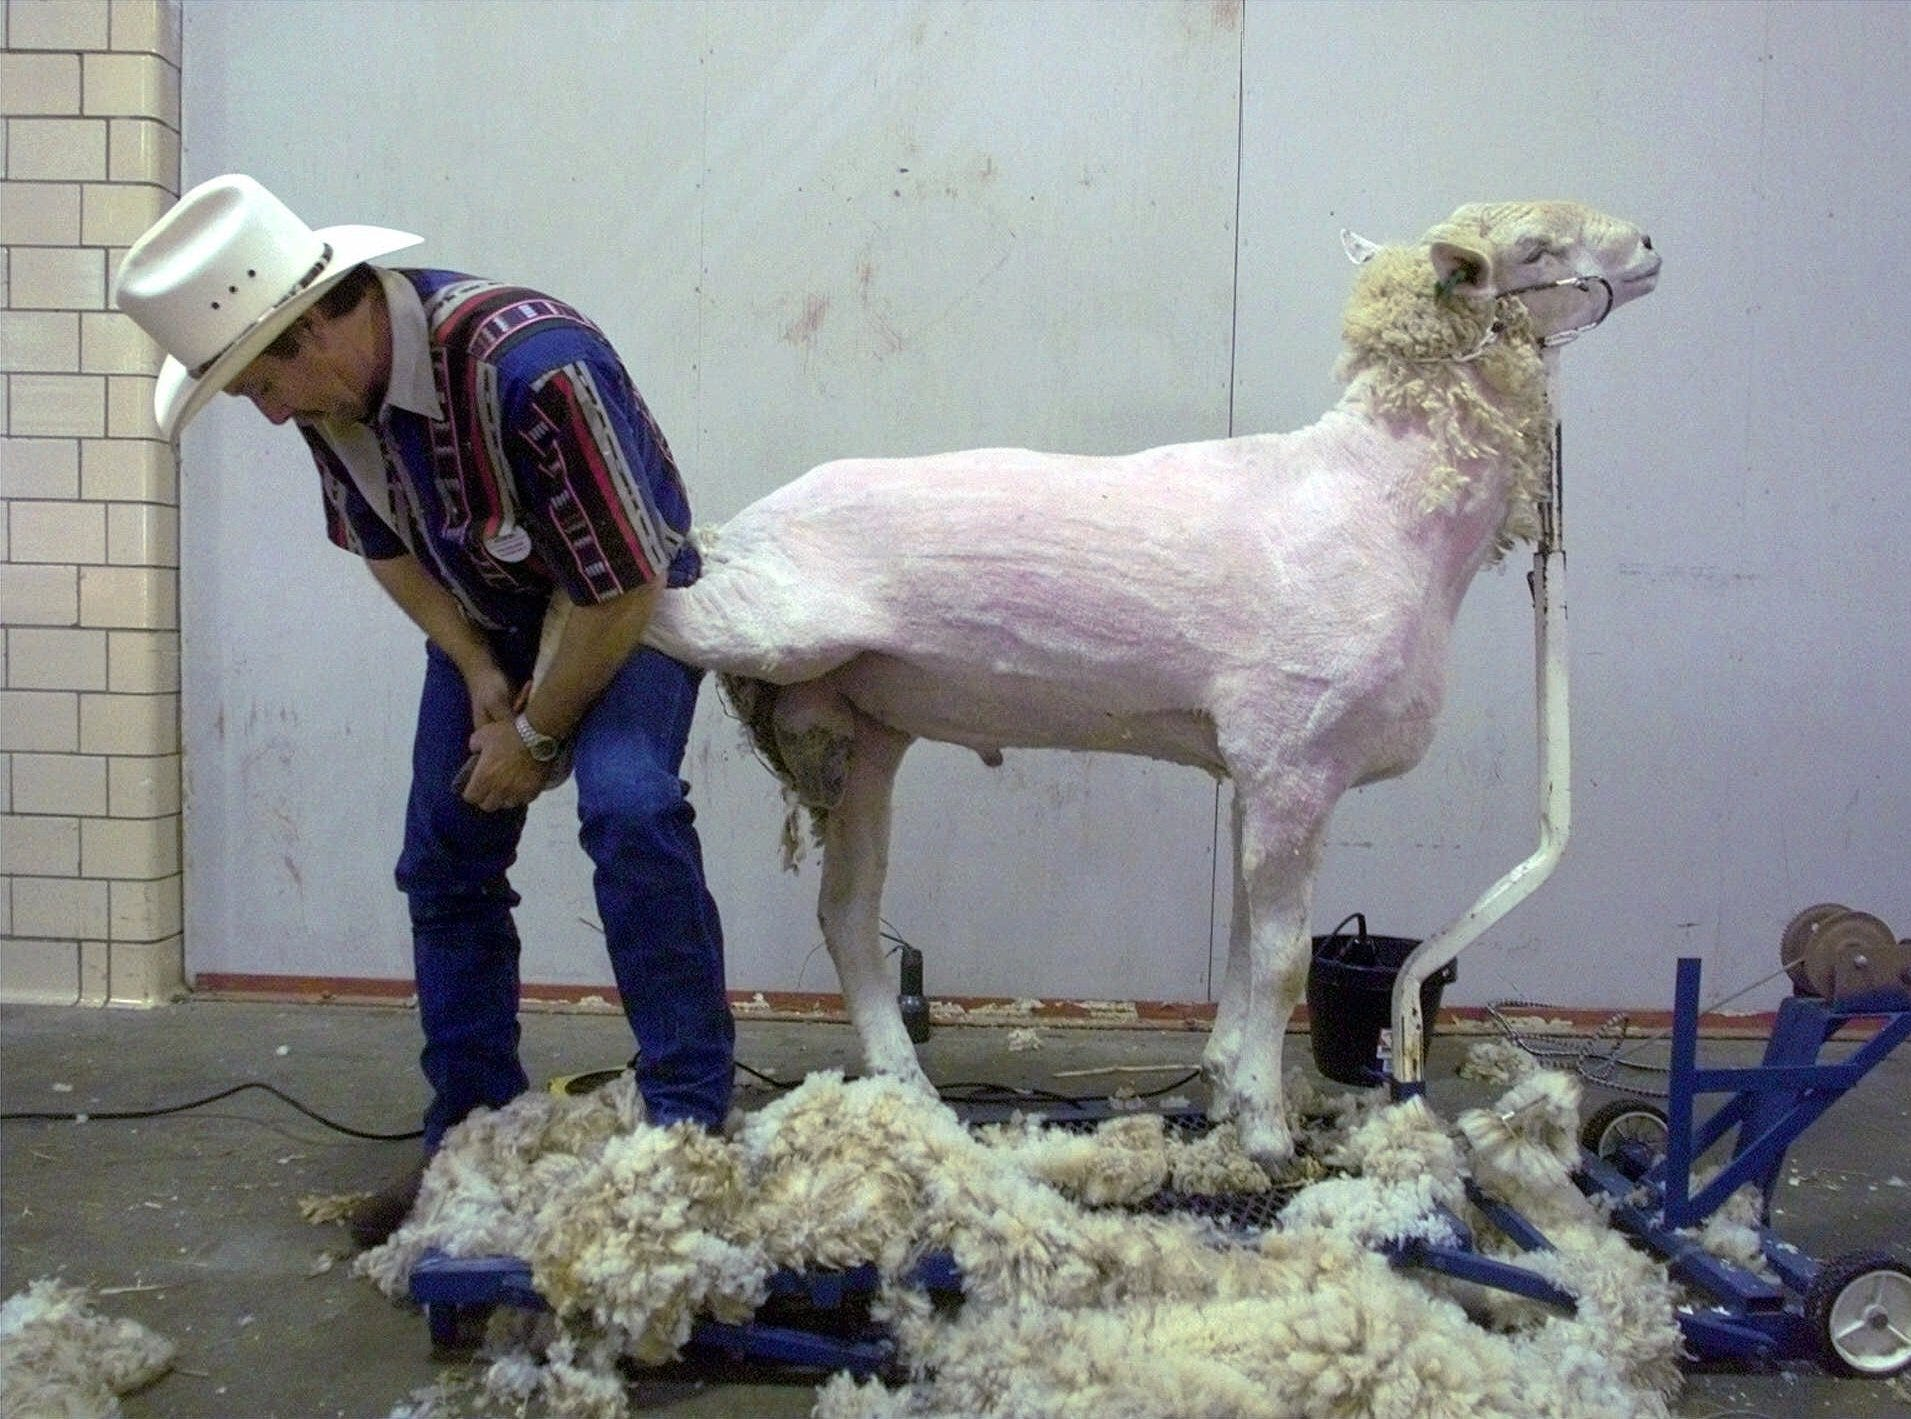 Most of his wool already sheared and lying on the floor around him, a ram sheep stands patiently as Ron Johnson of Gallatin, Tenn., trims his feet at the Kentucky State Fair Friday, Aug. 27, 1999, in Louisville, Ky.